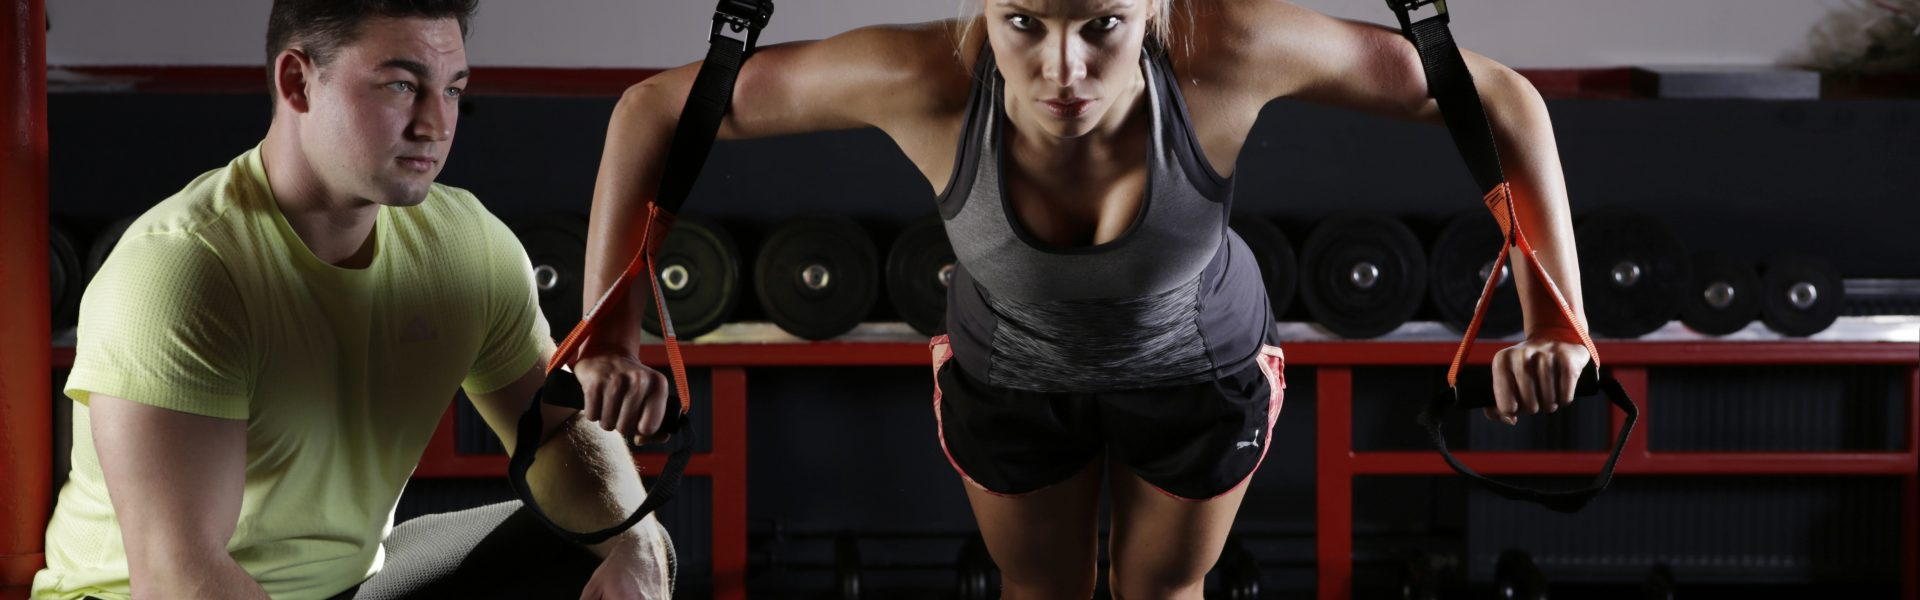 personal trainer with insurance